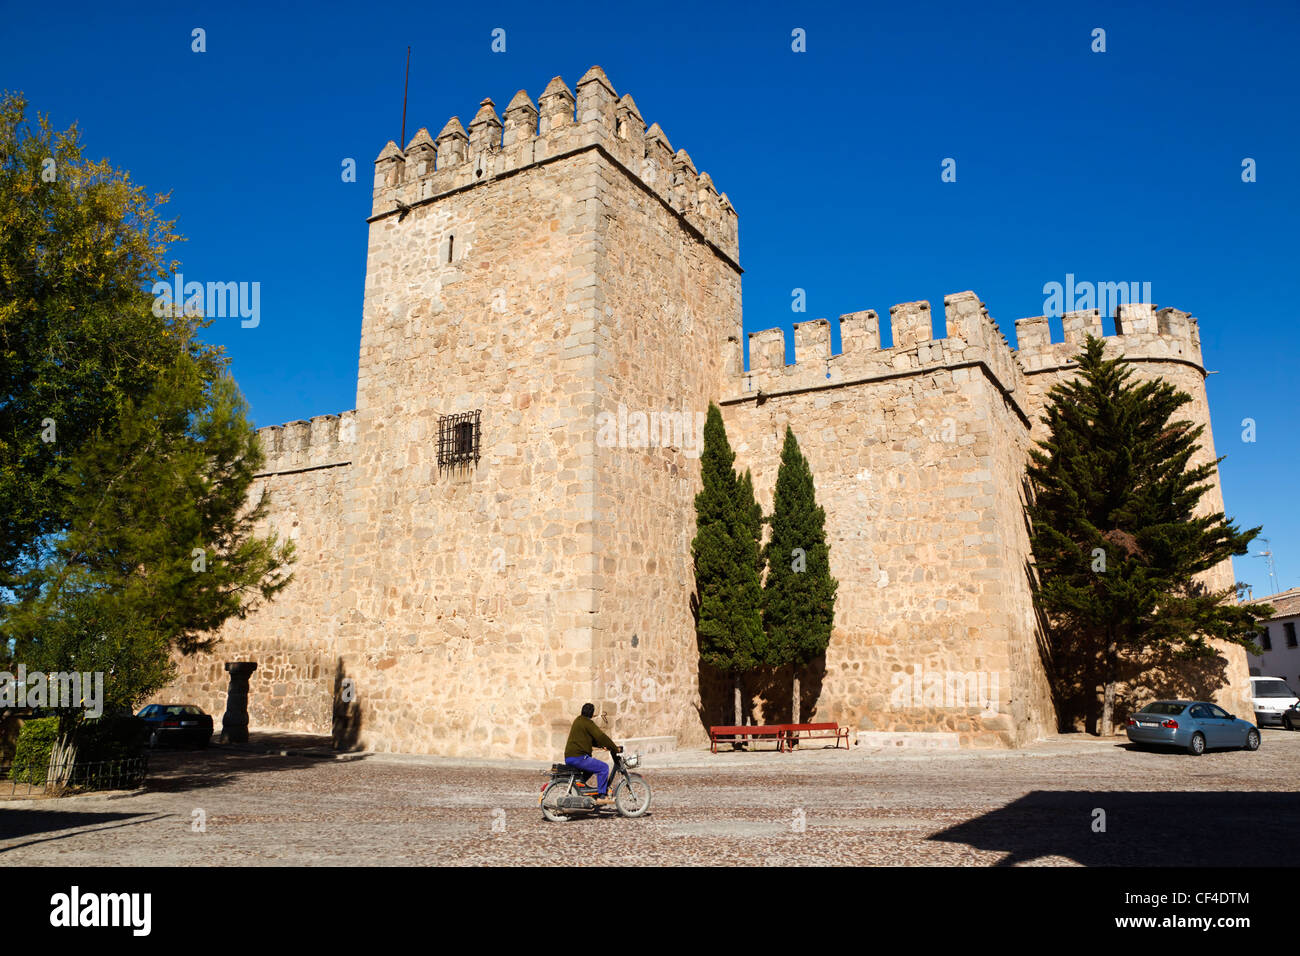 Castle of the Counts of Orgaz, Orgaz, Toledo Province, Castilla-La Mancha, Spain. - Stock Image